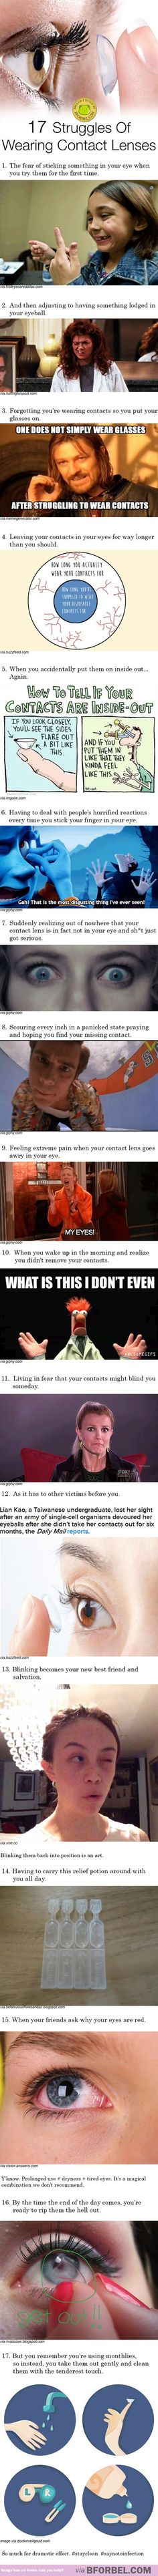 17 Struggles Of Wearing Contact Lenses…: